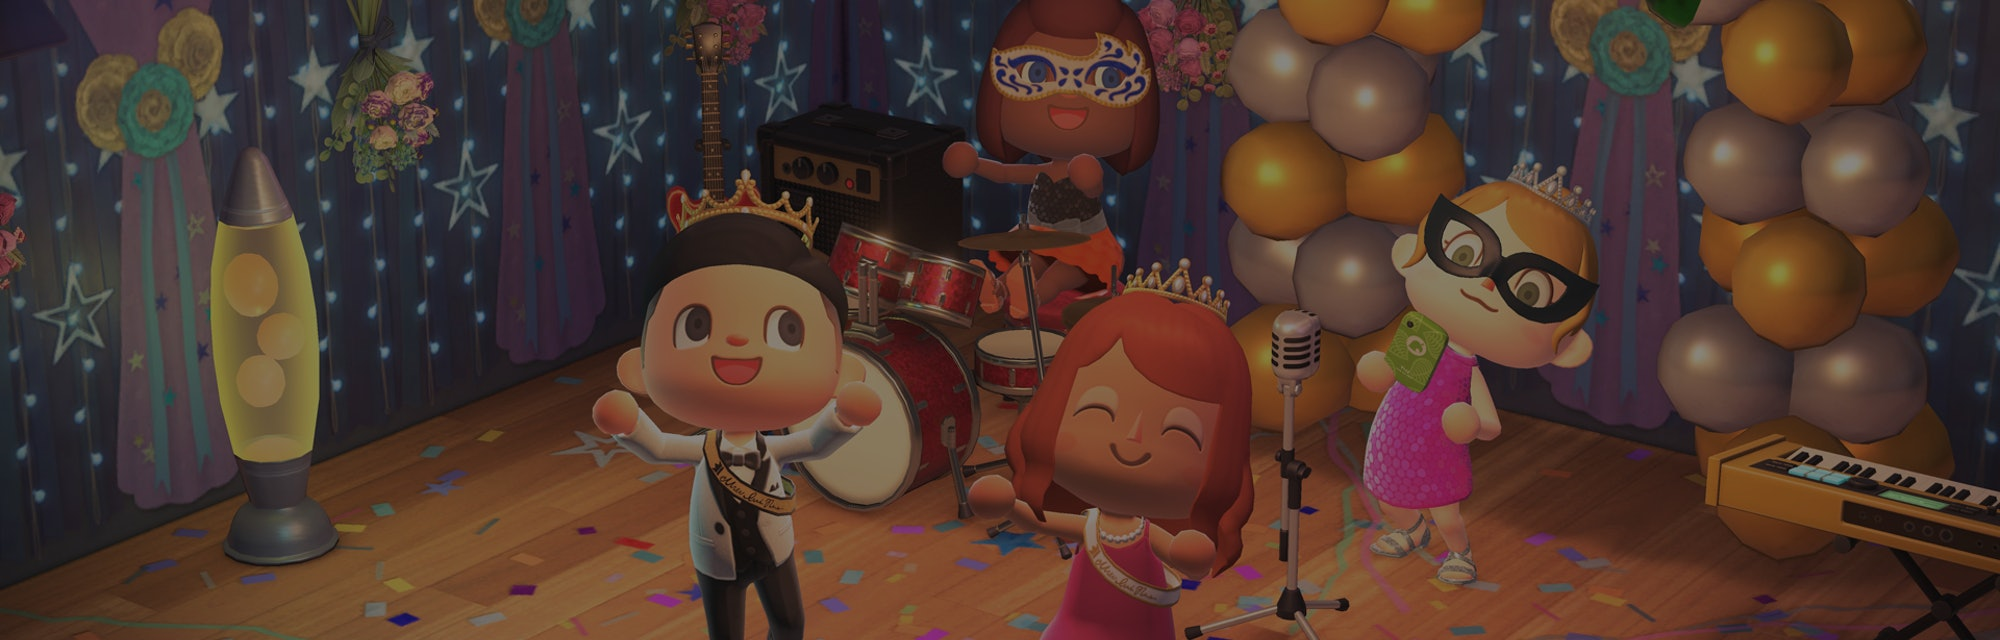 A group of Animal Crossing avatars are seen having fun at prom.